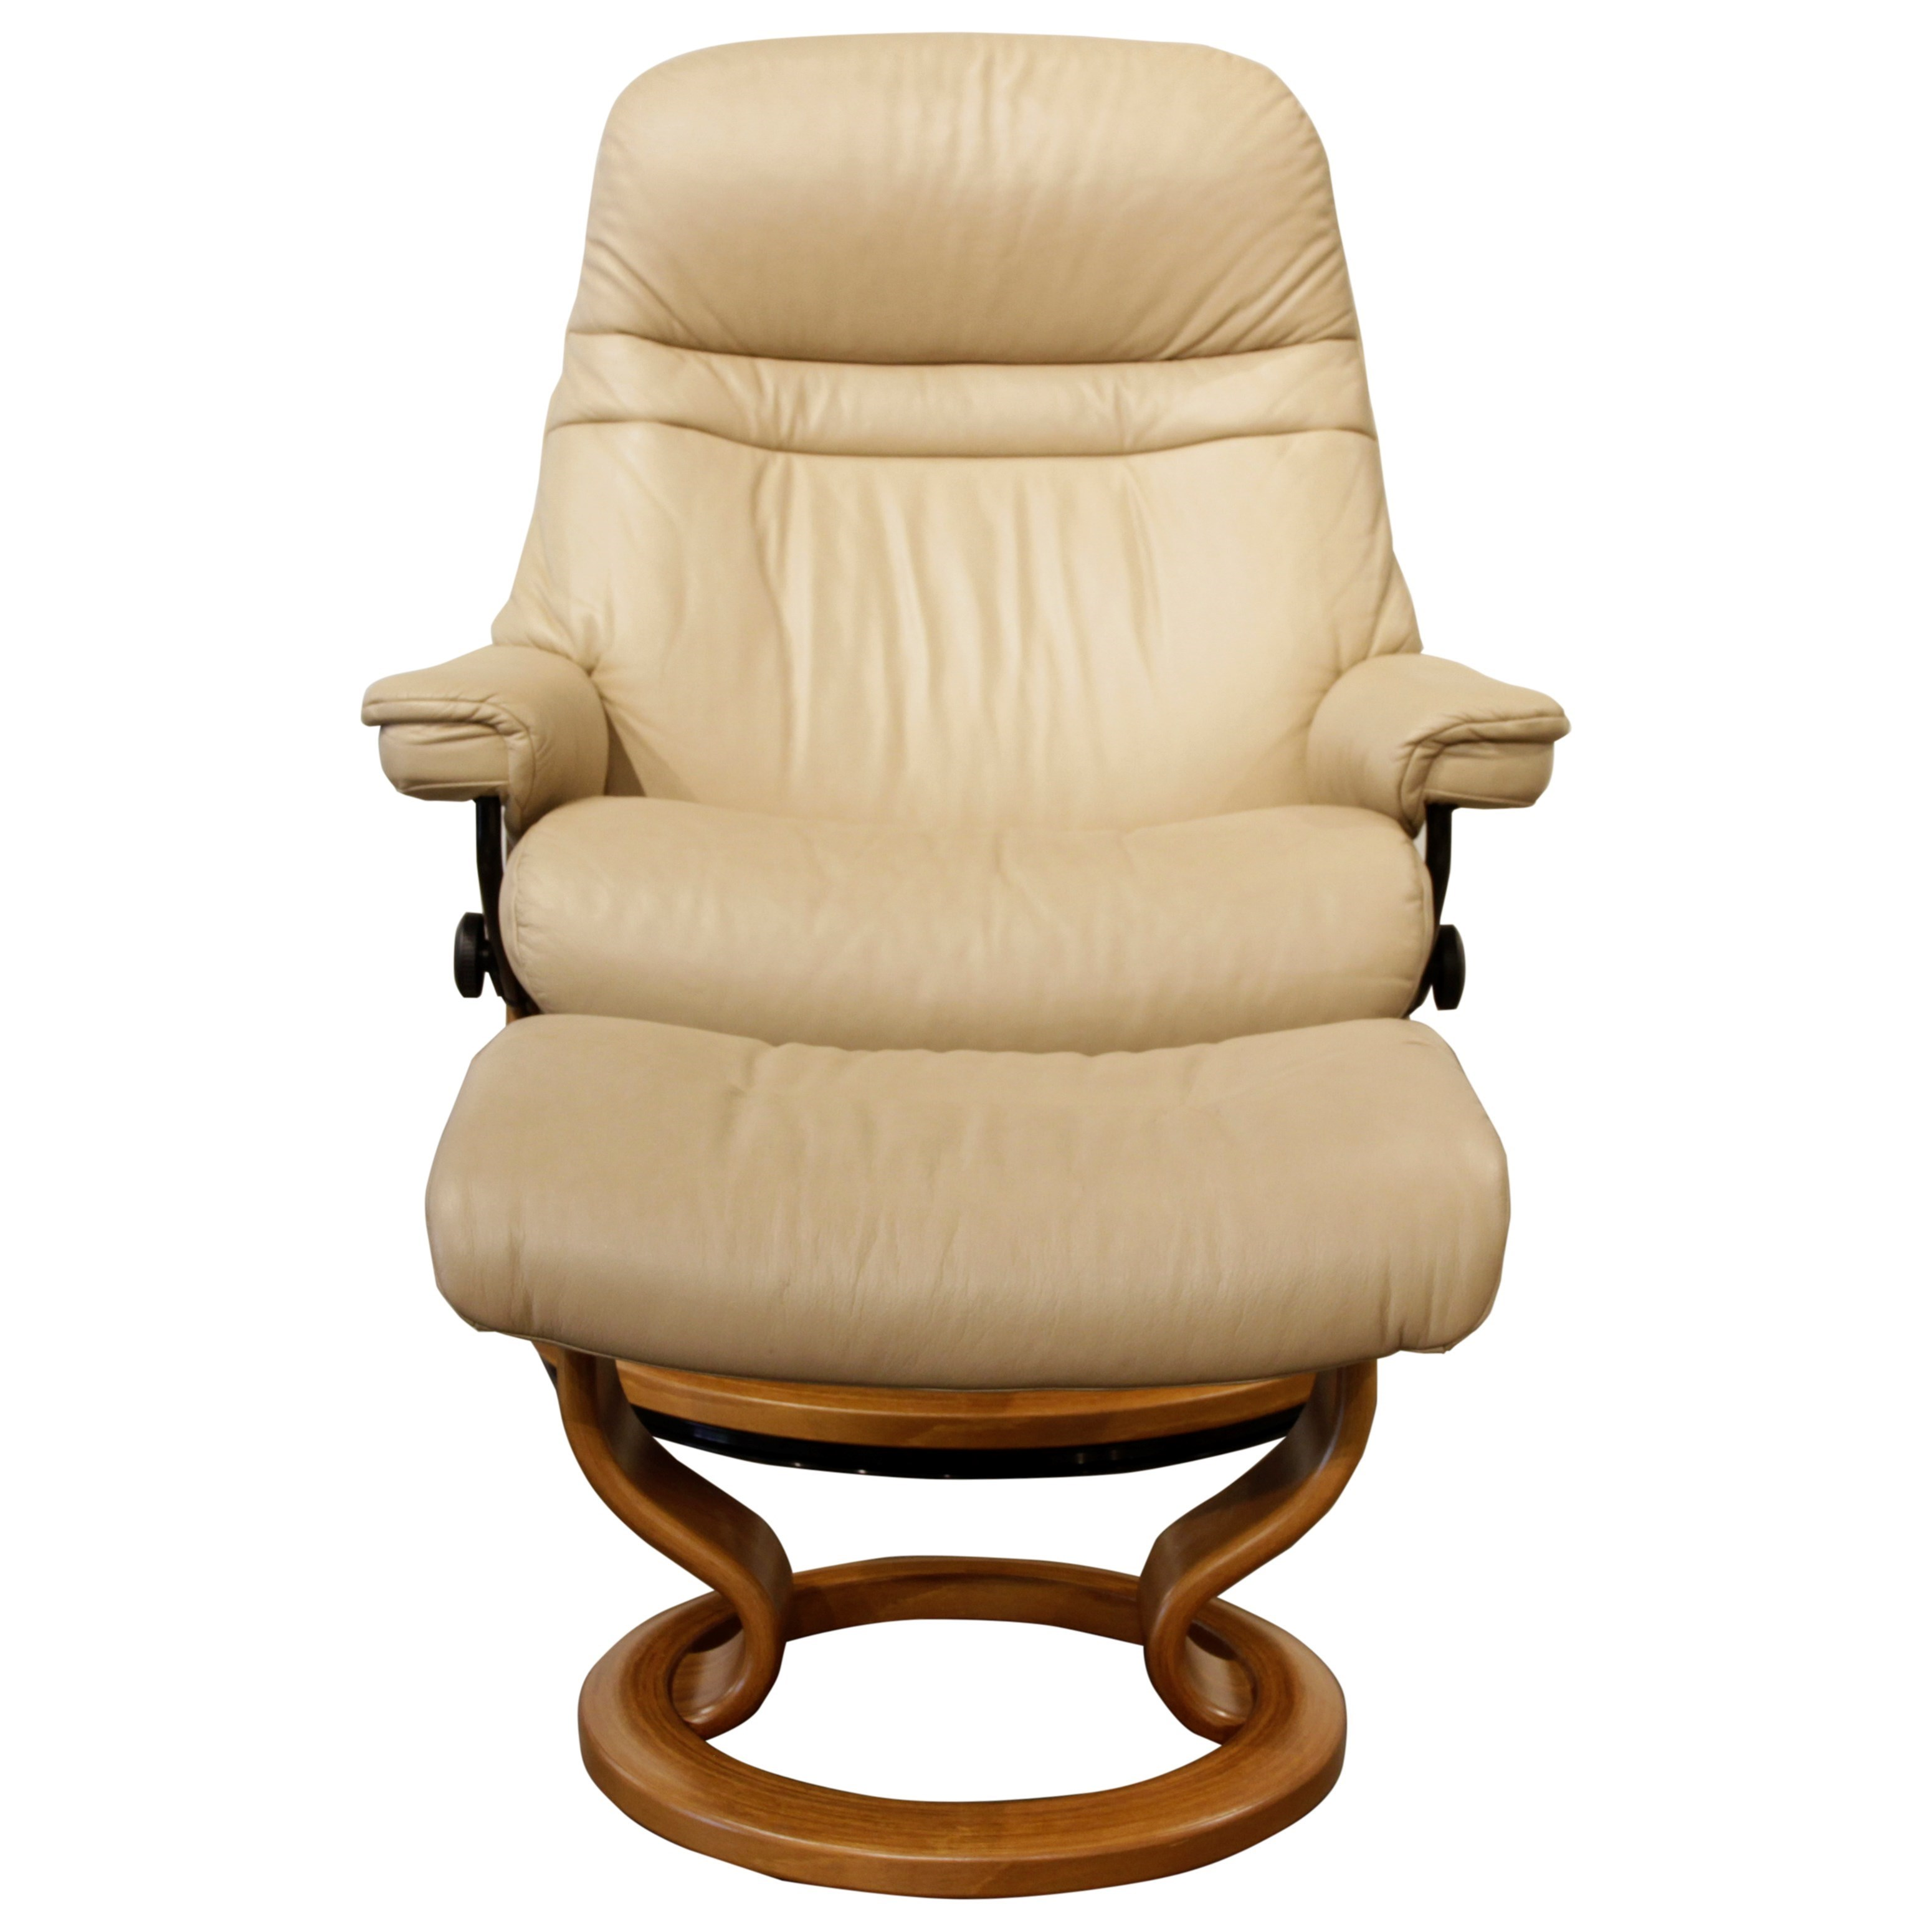 Stressless Sessel Inkl. Hocker Modell Sunrise (m) Classic Stressless Sessel Und Sofa